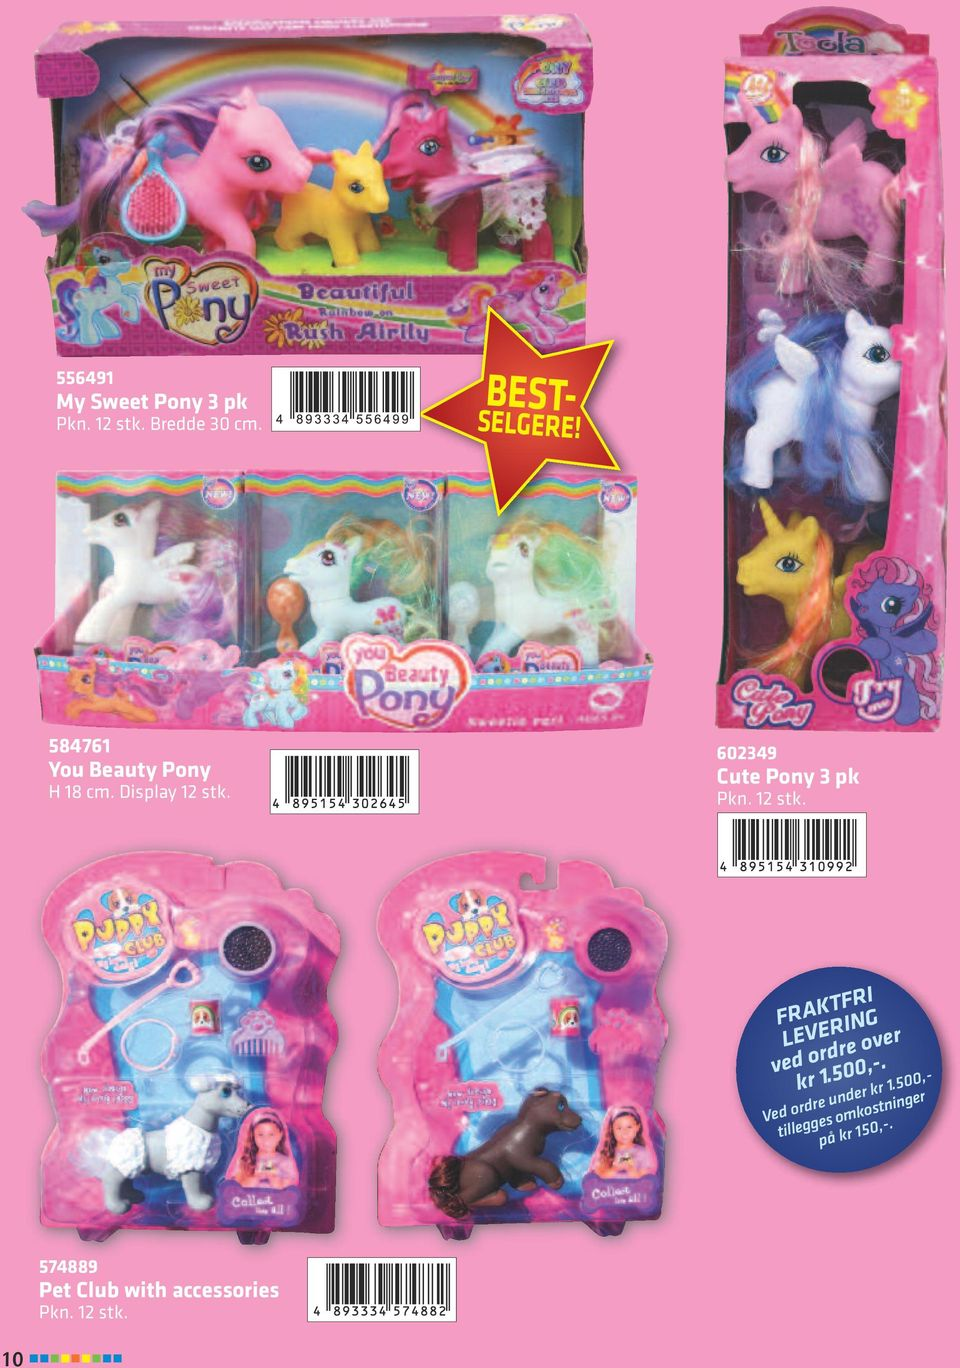 602349 Cute Pony 3 pk FRAKTFRI LEVERING ved ordre over kr 1.500,-.